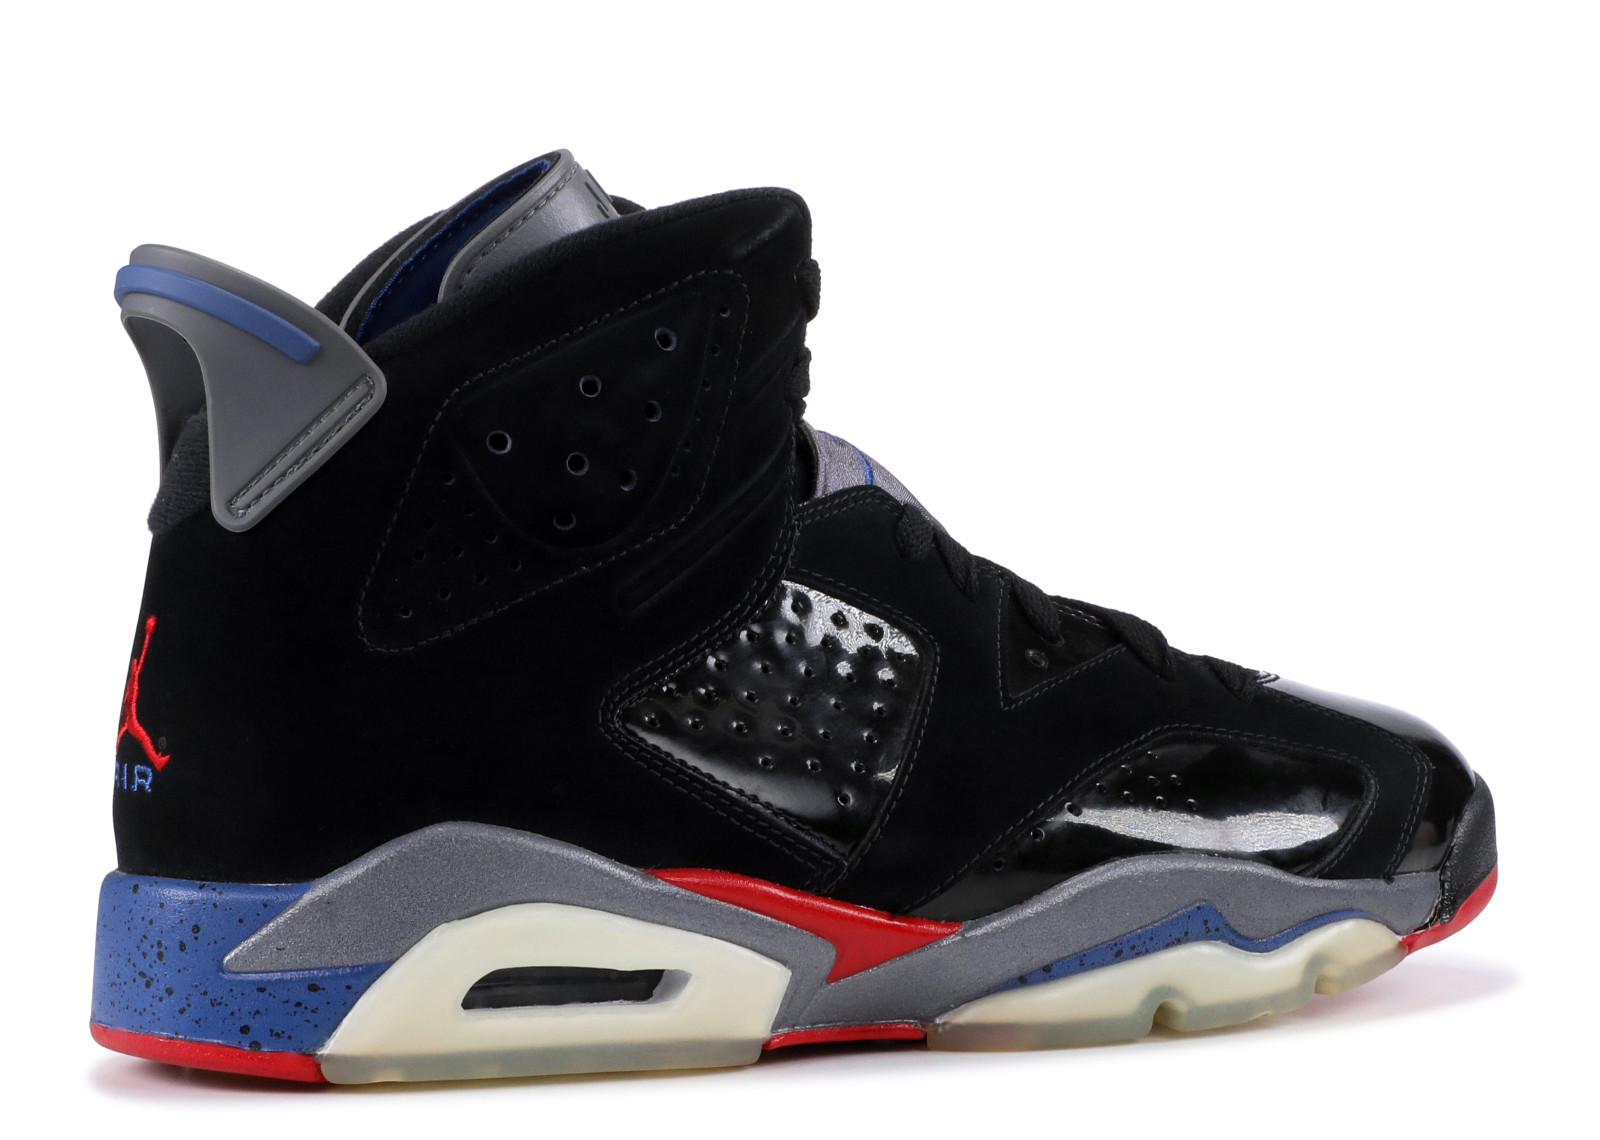 newest 97248 dba0d Jordan 6 Retro Pistons - 3